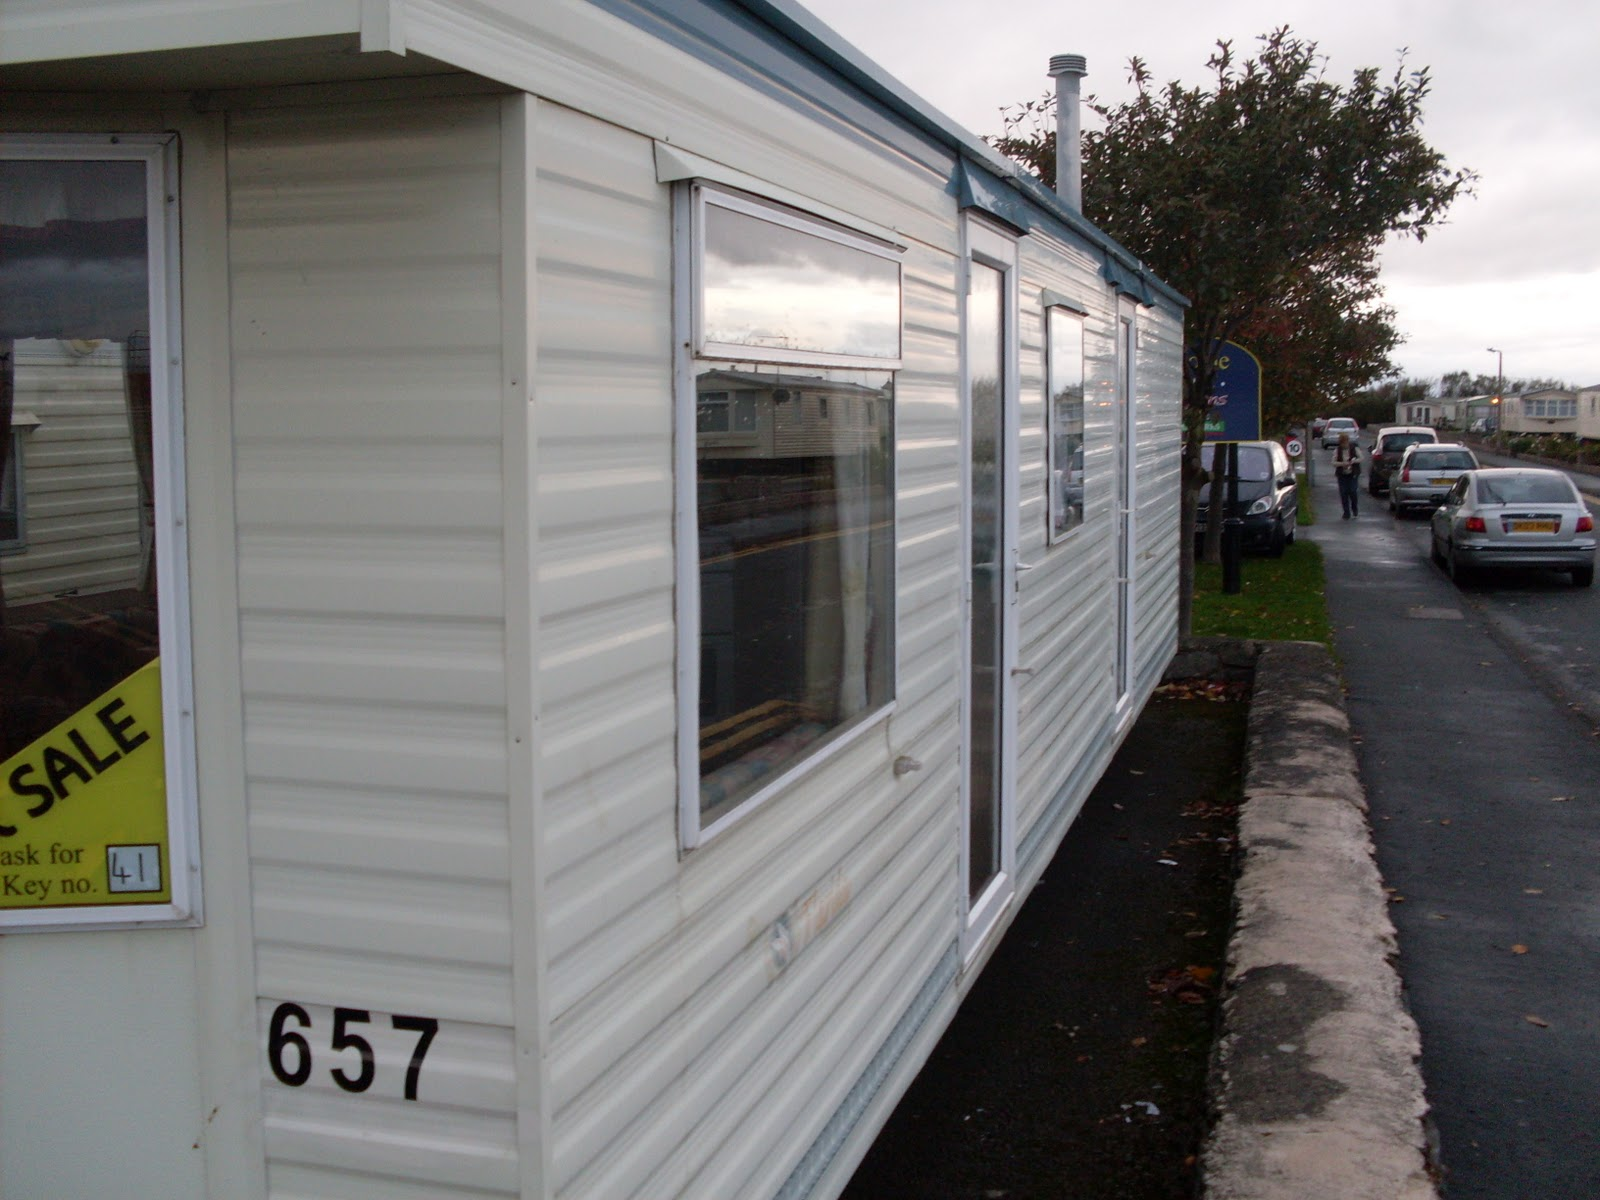 Original  For The Caravan At Tymawr Caravan Park In Towyn She Booked A Seven